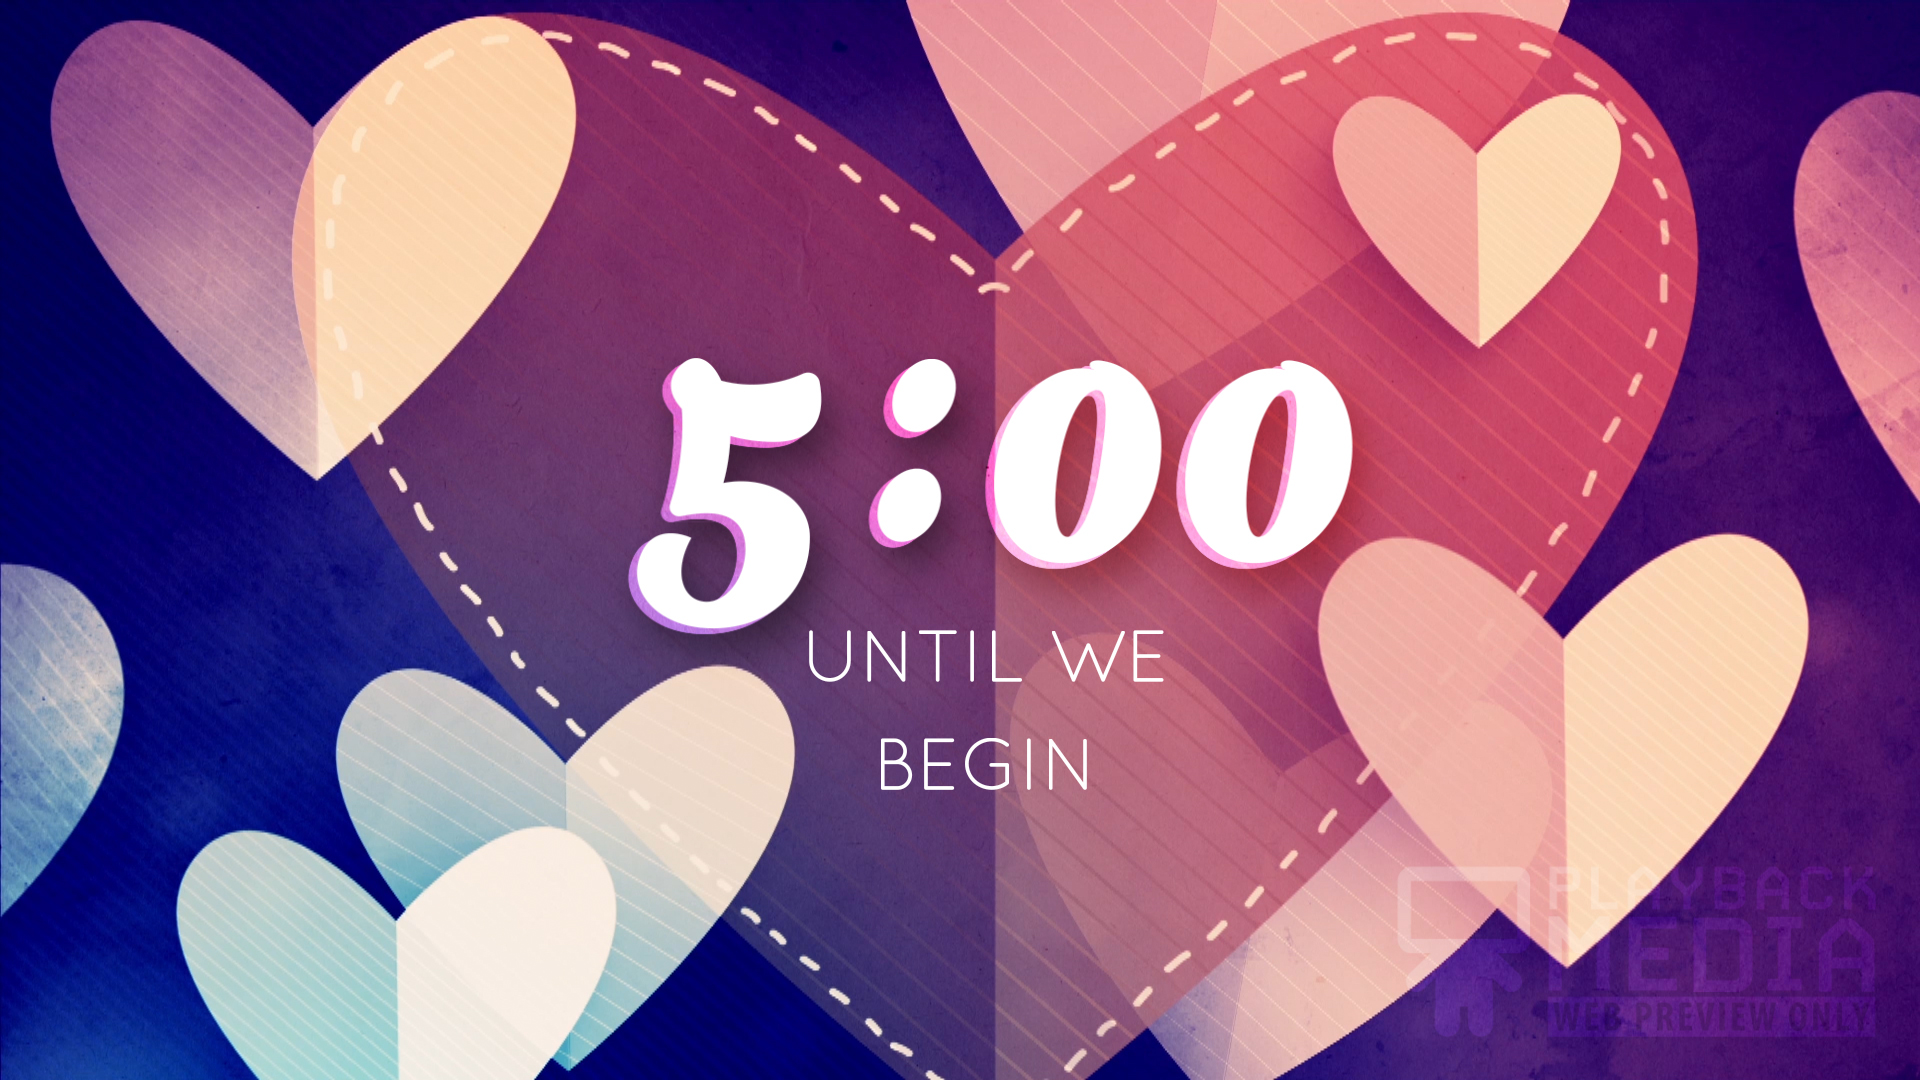 Heartfelt Love Countdown Image